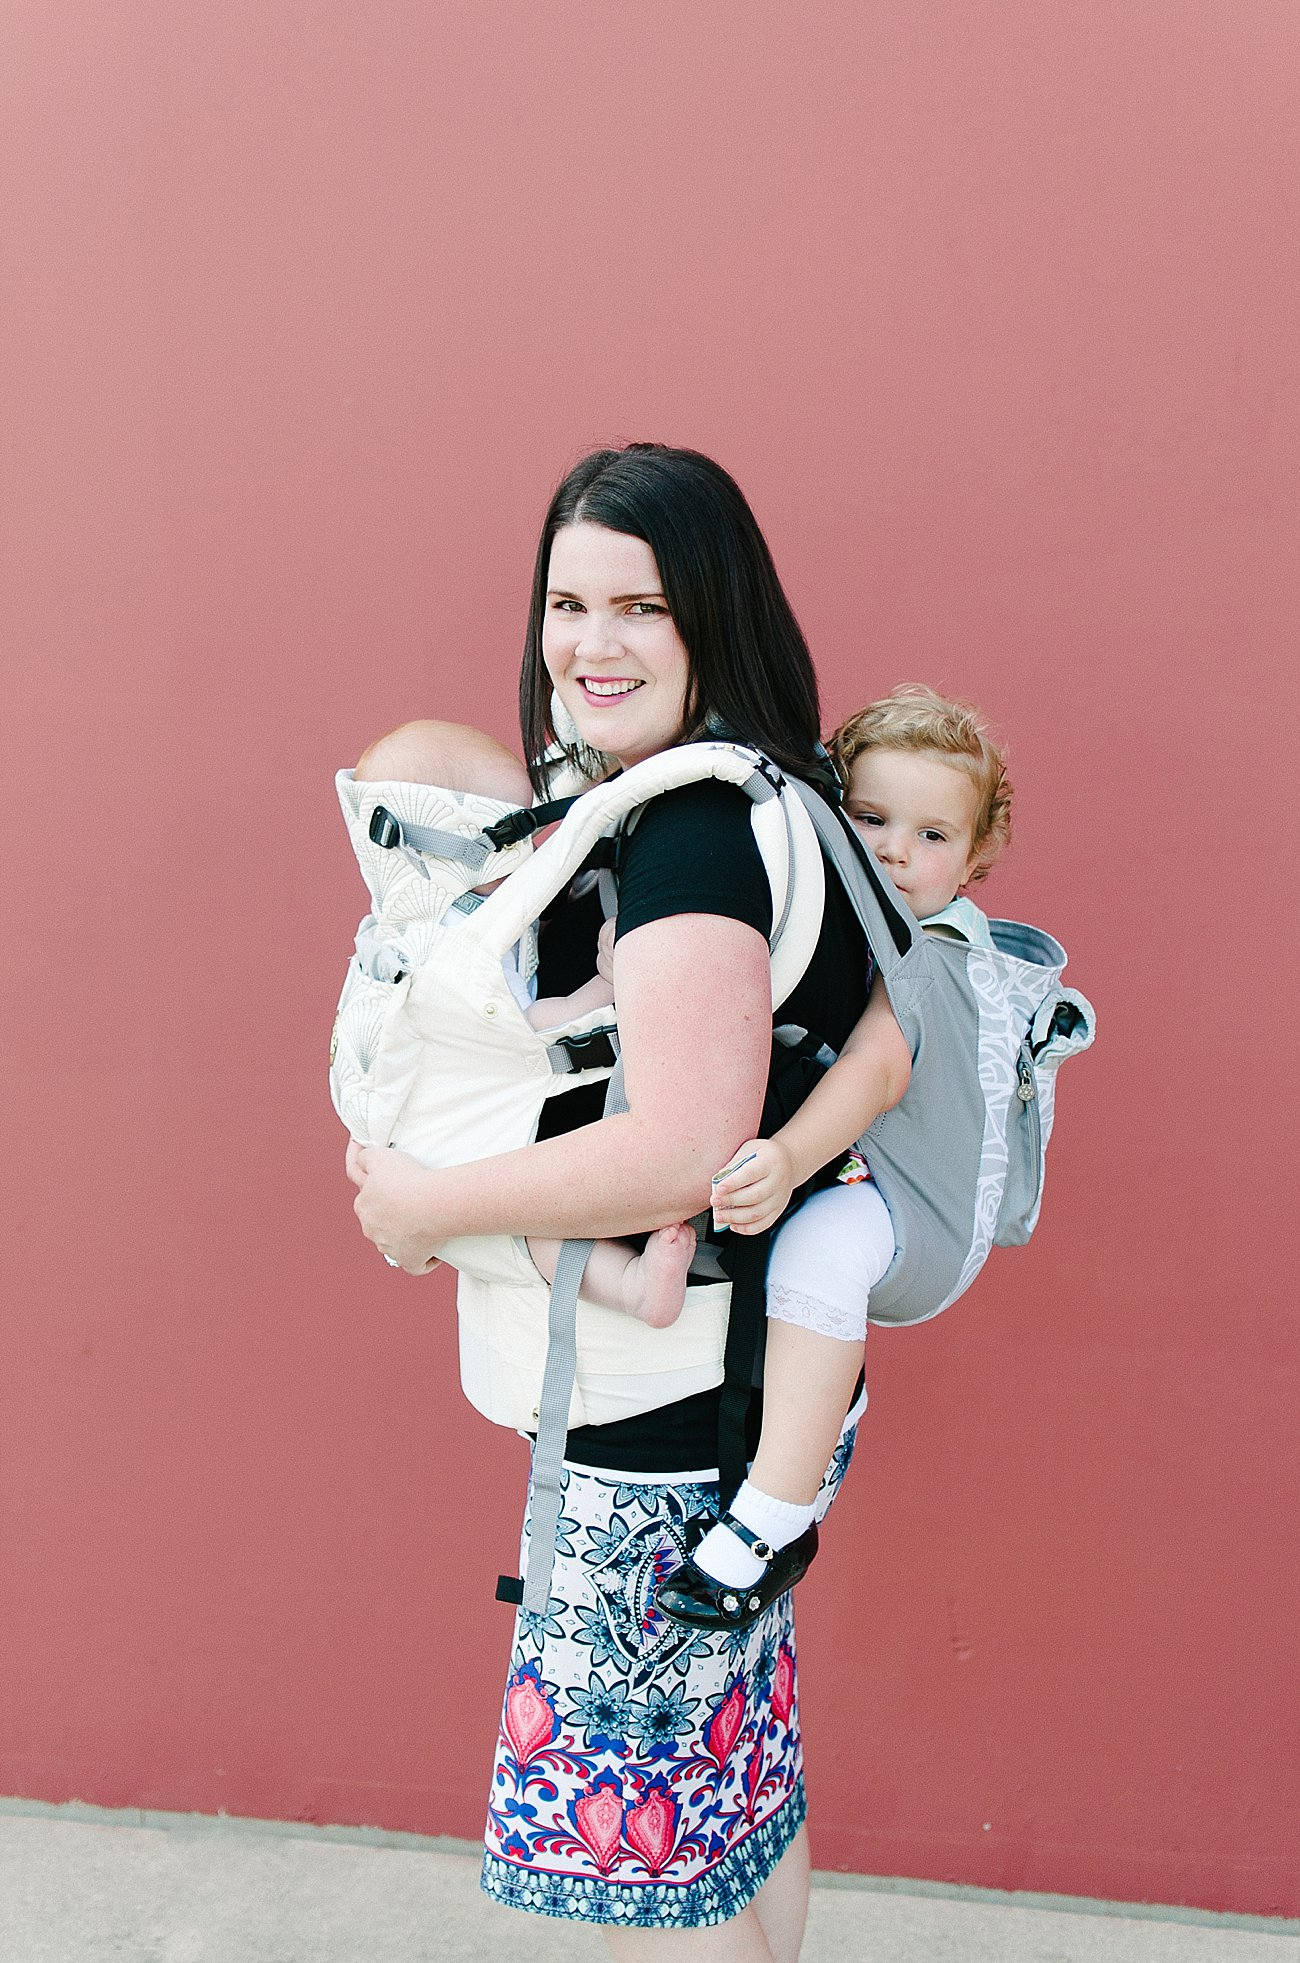 with Lillebaby Complete & CarryOn Baby Carriers #babywearing #tandemwearing #toddlerwearing (4)